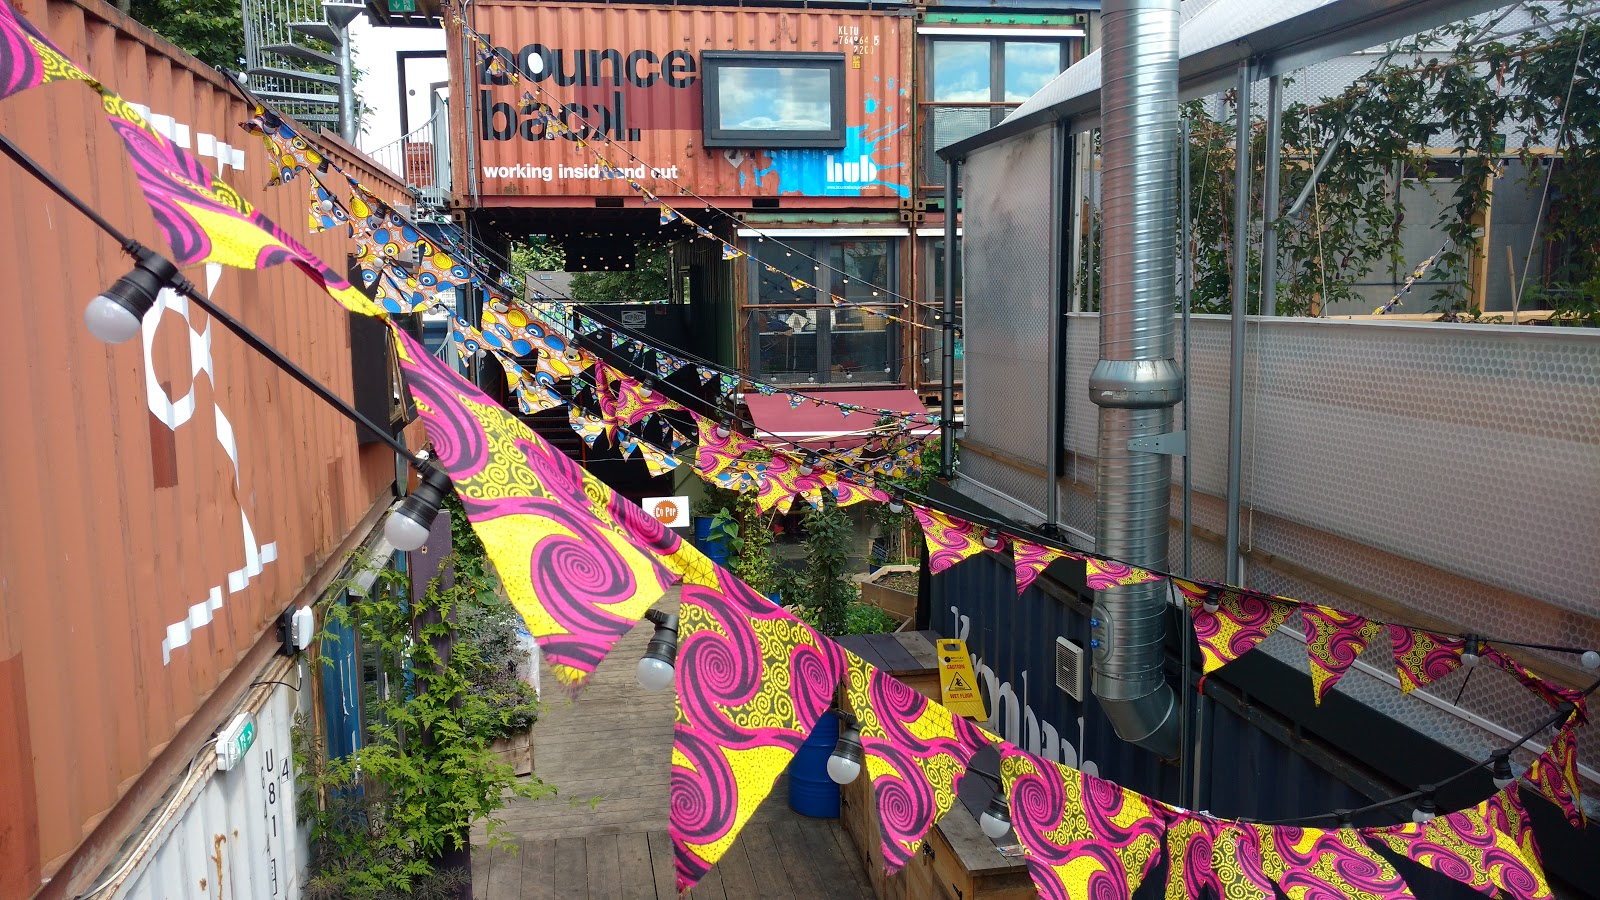 Pop Brixton is constructed from shipping containers, an innovative architectural design.